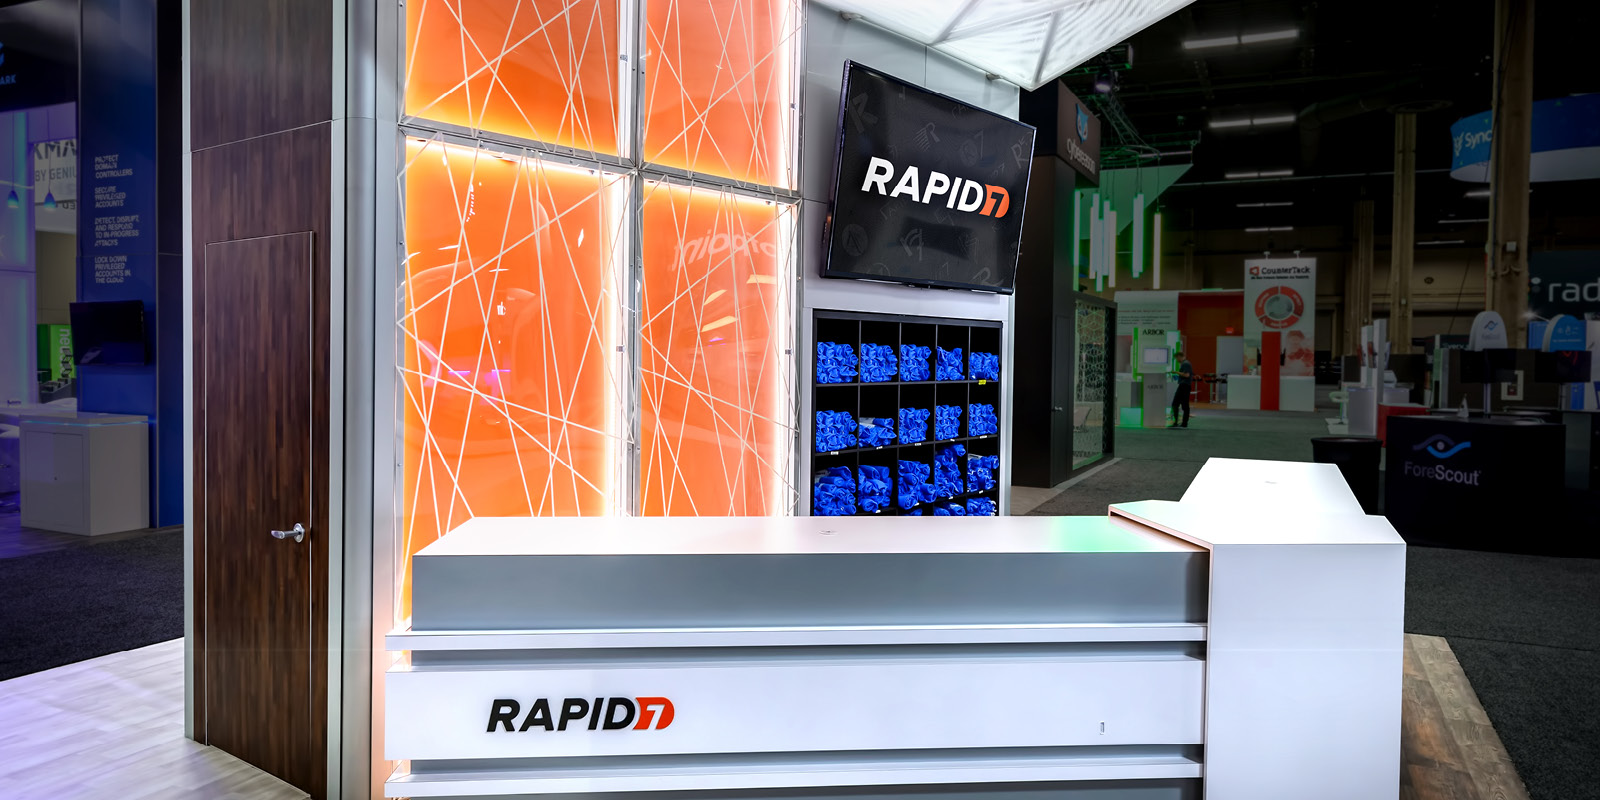 Hill & Partners Rental Branded Environment Trade Show Exhibit for Rapid7